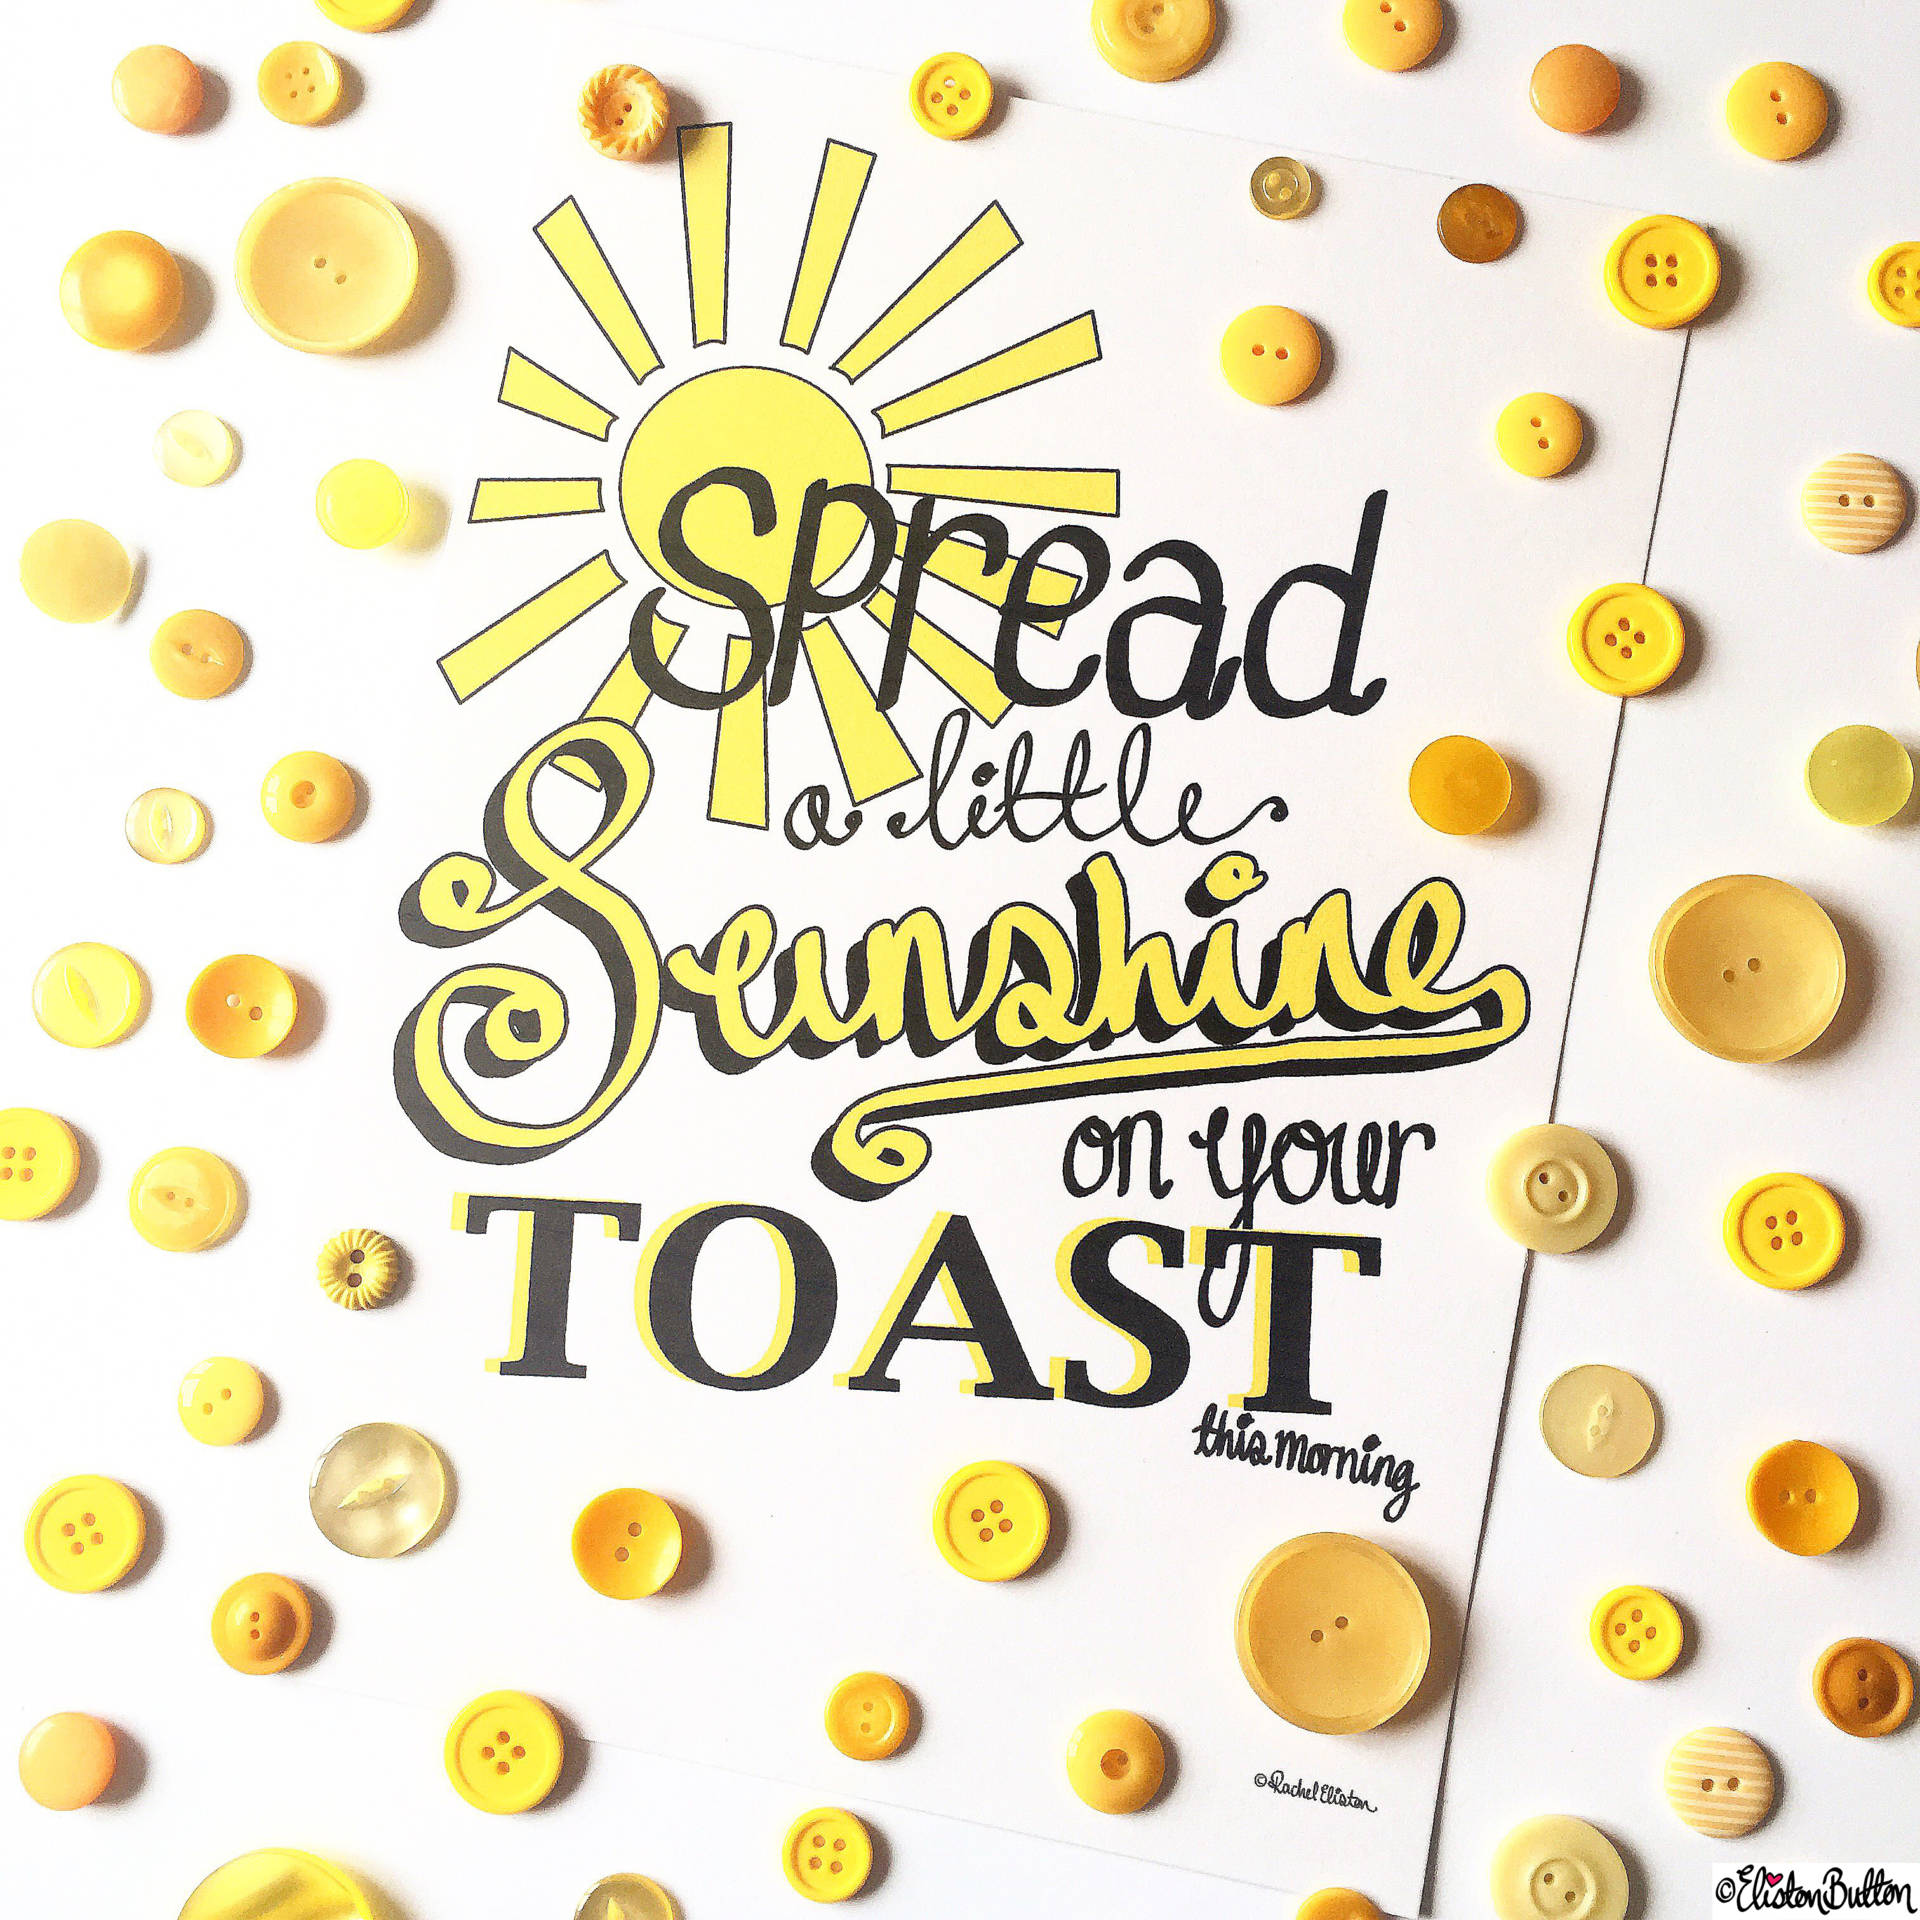 Day 01 - Yellow - Spread a Little Sunshine Illustrated Hand Lettered Print by Eliston Button, Yellow Buttons - Photo-a-Day – April 2016 at www.elistonbutton.com - Eliston Button - That Crafty Kid – Art, Design, Craft & Adventure.